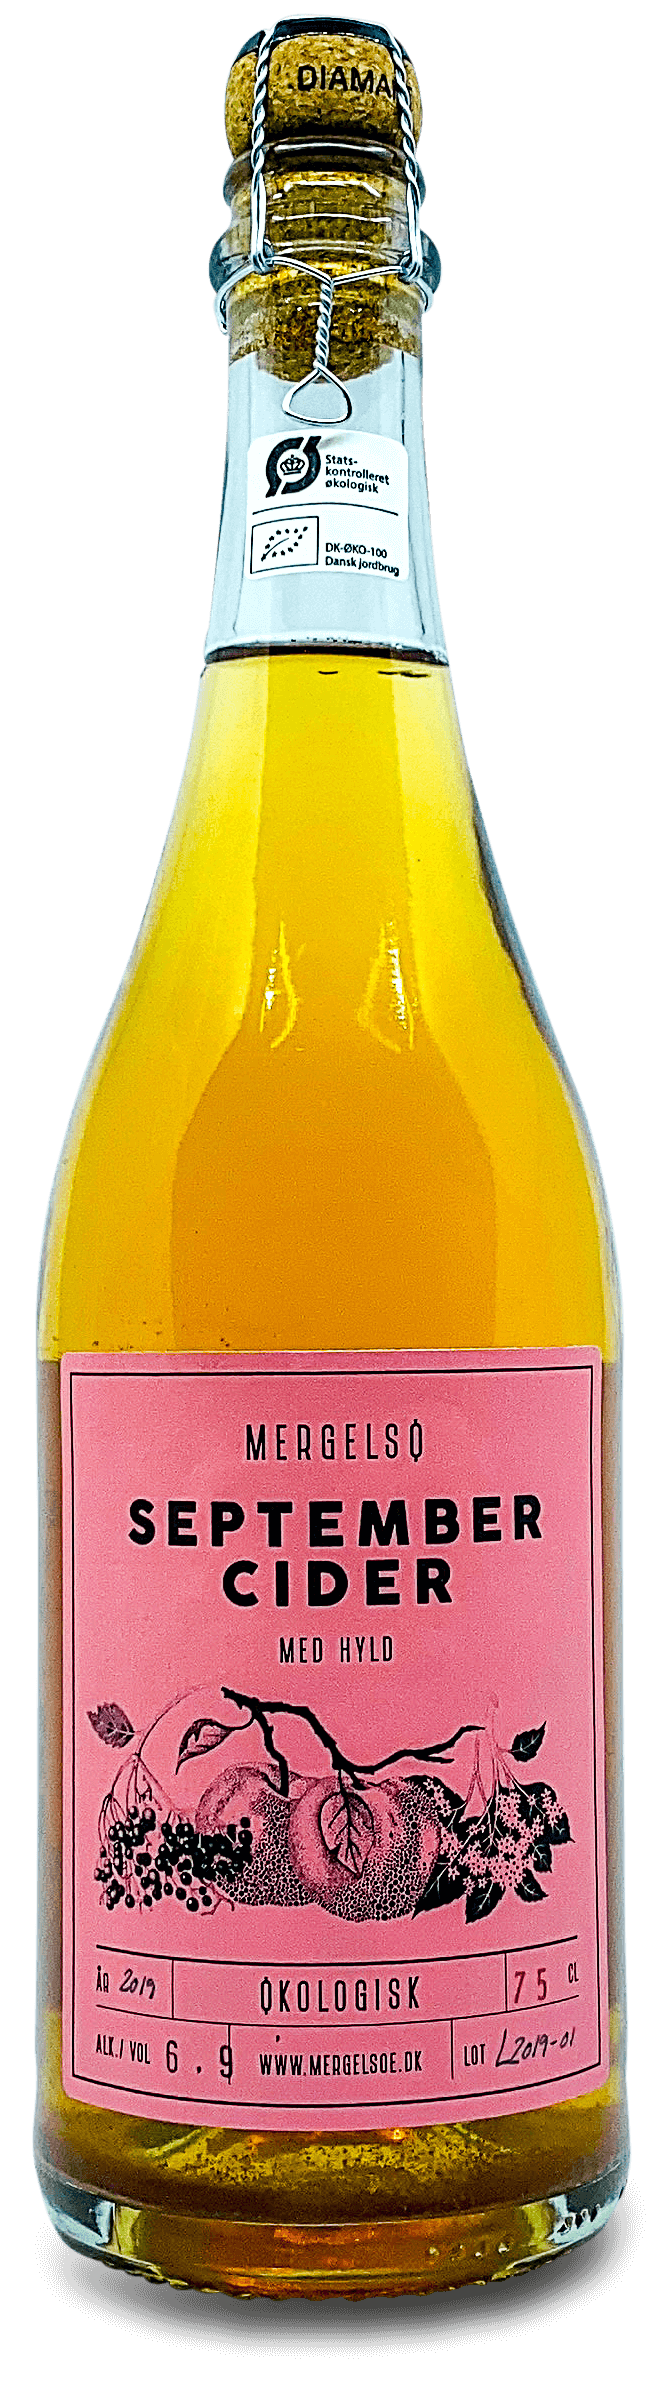 September Cider med Hyld - Vinsupernaturel